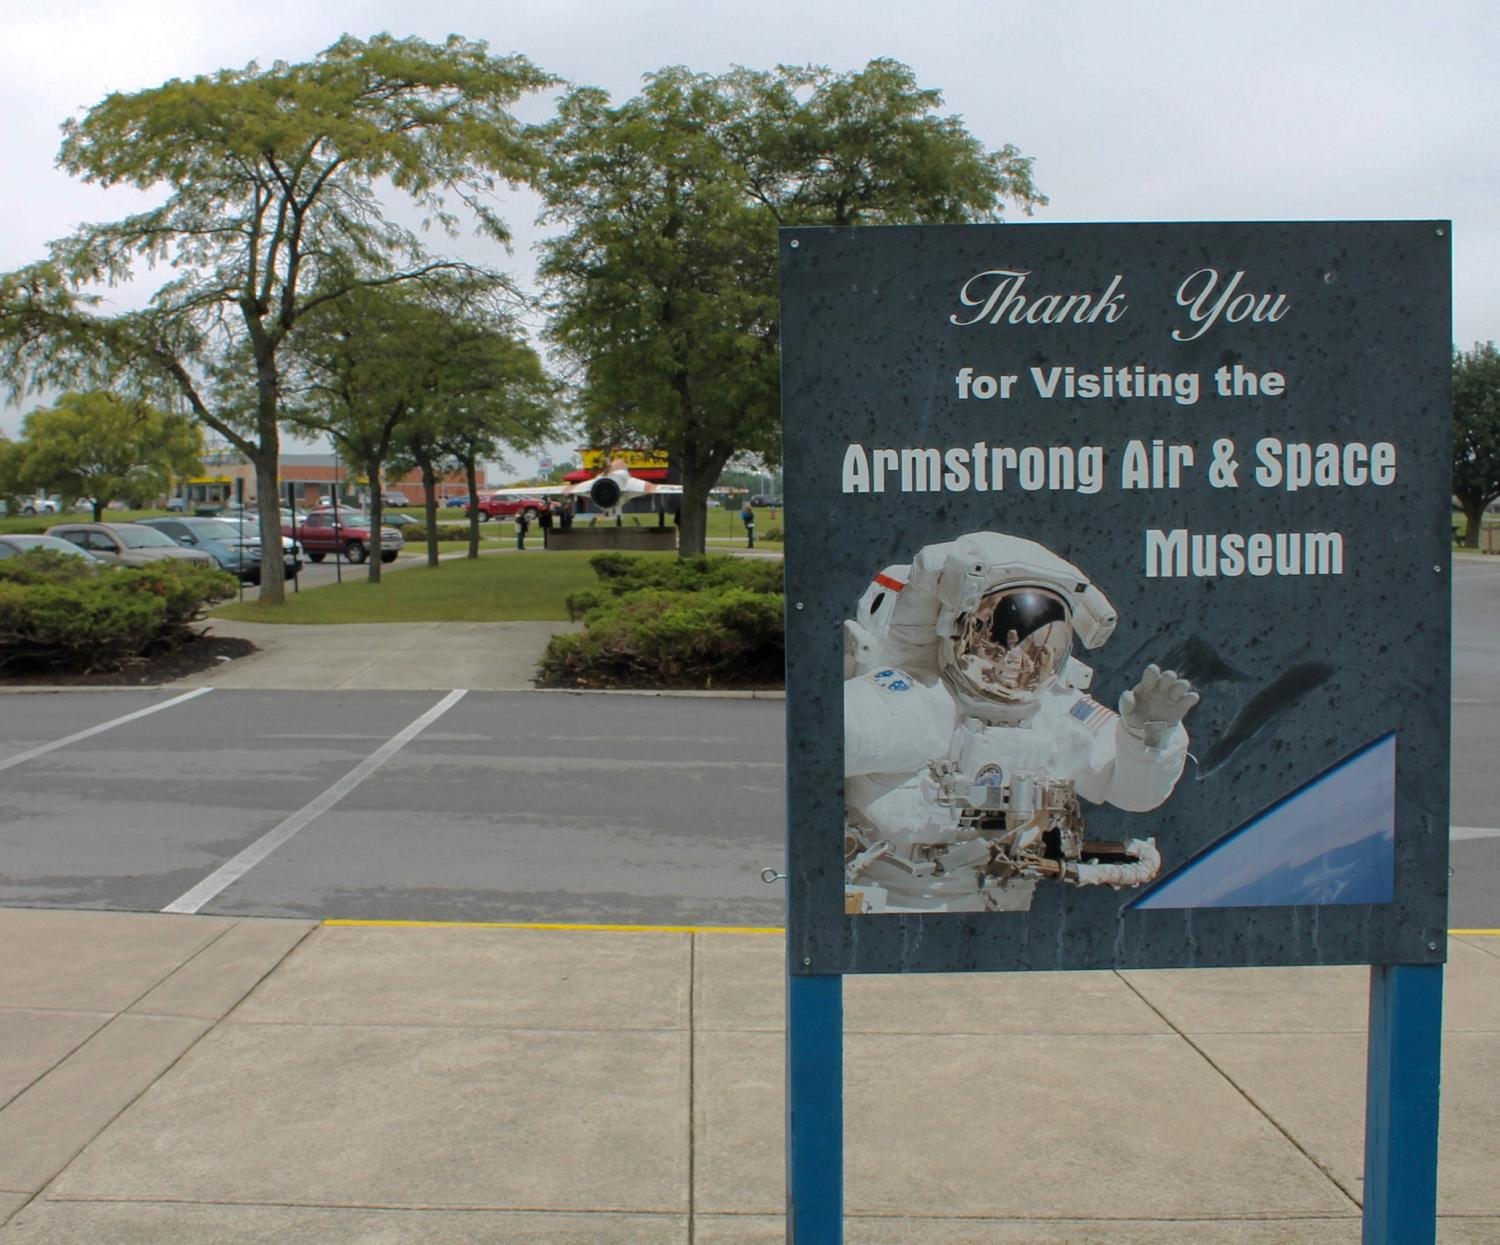 "The Armstrong Air and Space Museum in Wapakoneta, OH opened in 1972. It is named for Wapakoneta-native and astronaut Neil Armstrong, who famously became the first man on the moon in 1969. The museum is dedicated to preserving Armstrong's story as well as the stories of ""all Ohioans who have defied gravity."" ADDRESS: 500 Apollo Dr., Wapakoneta, OH (45895). / Image: Rose Brewington // Published: 9.12.17"